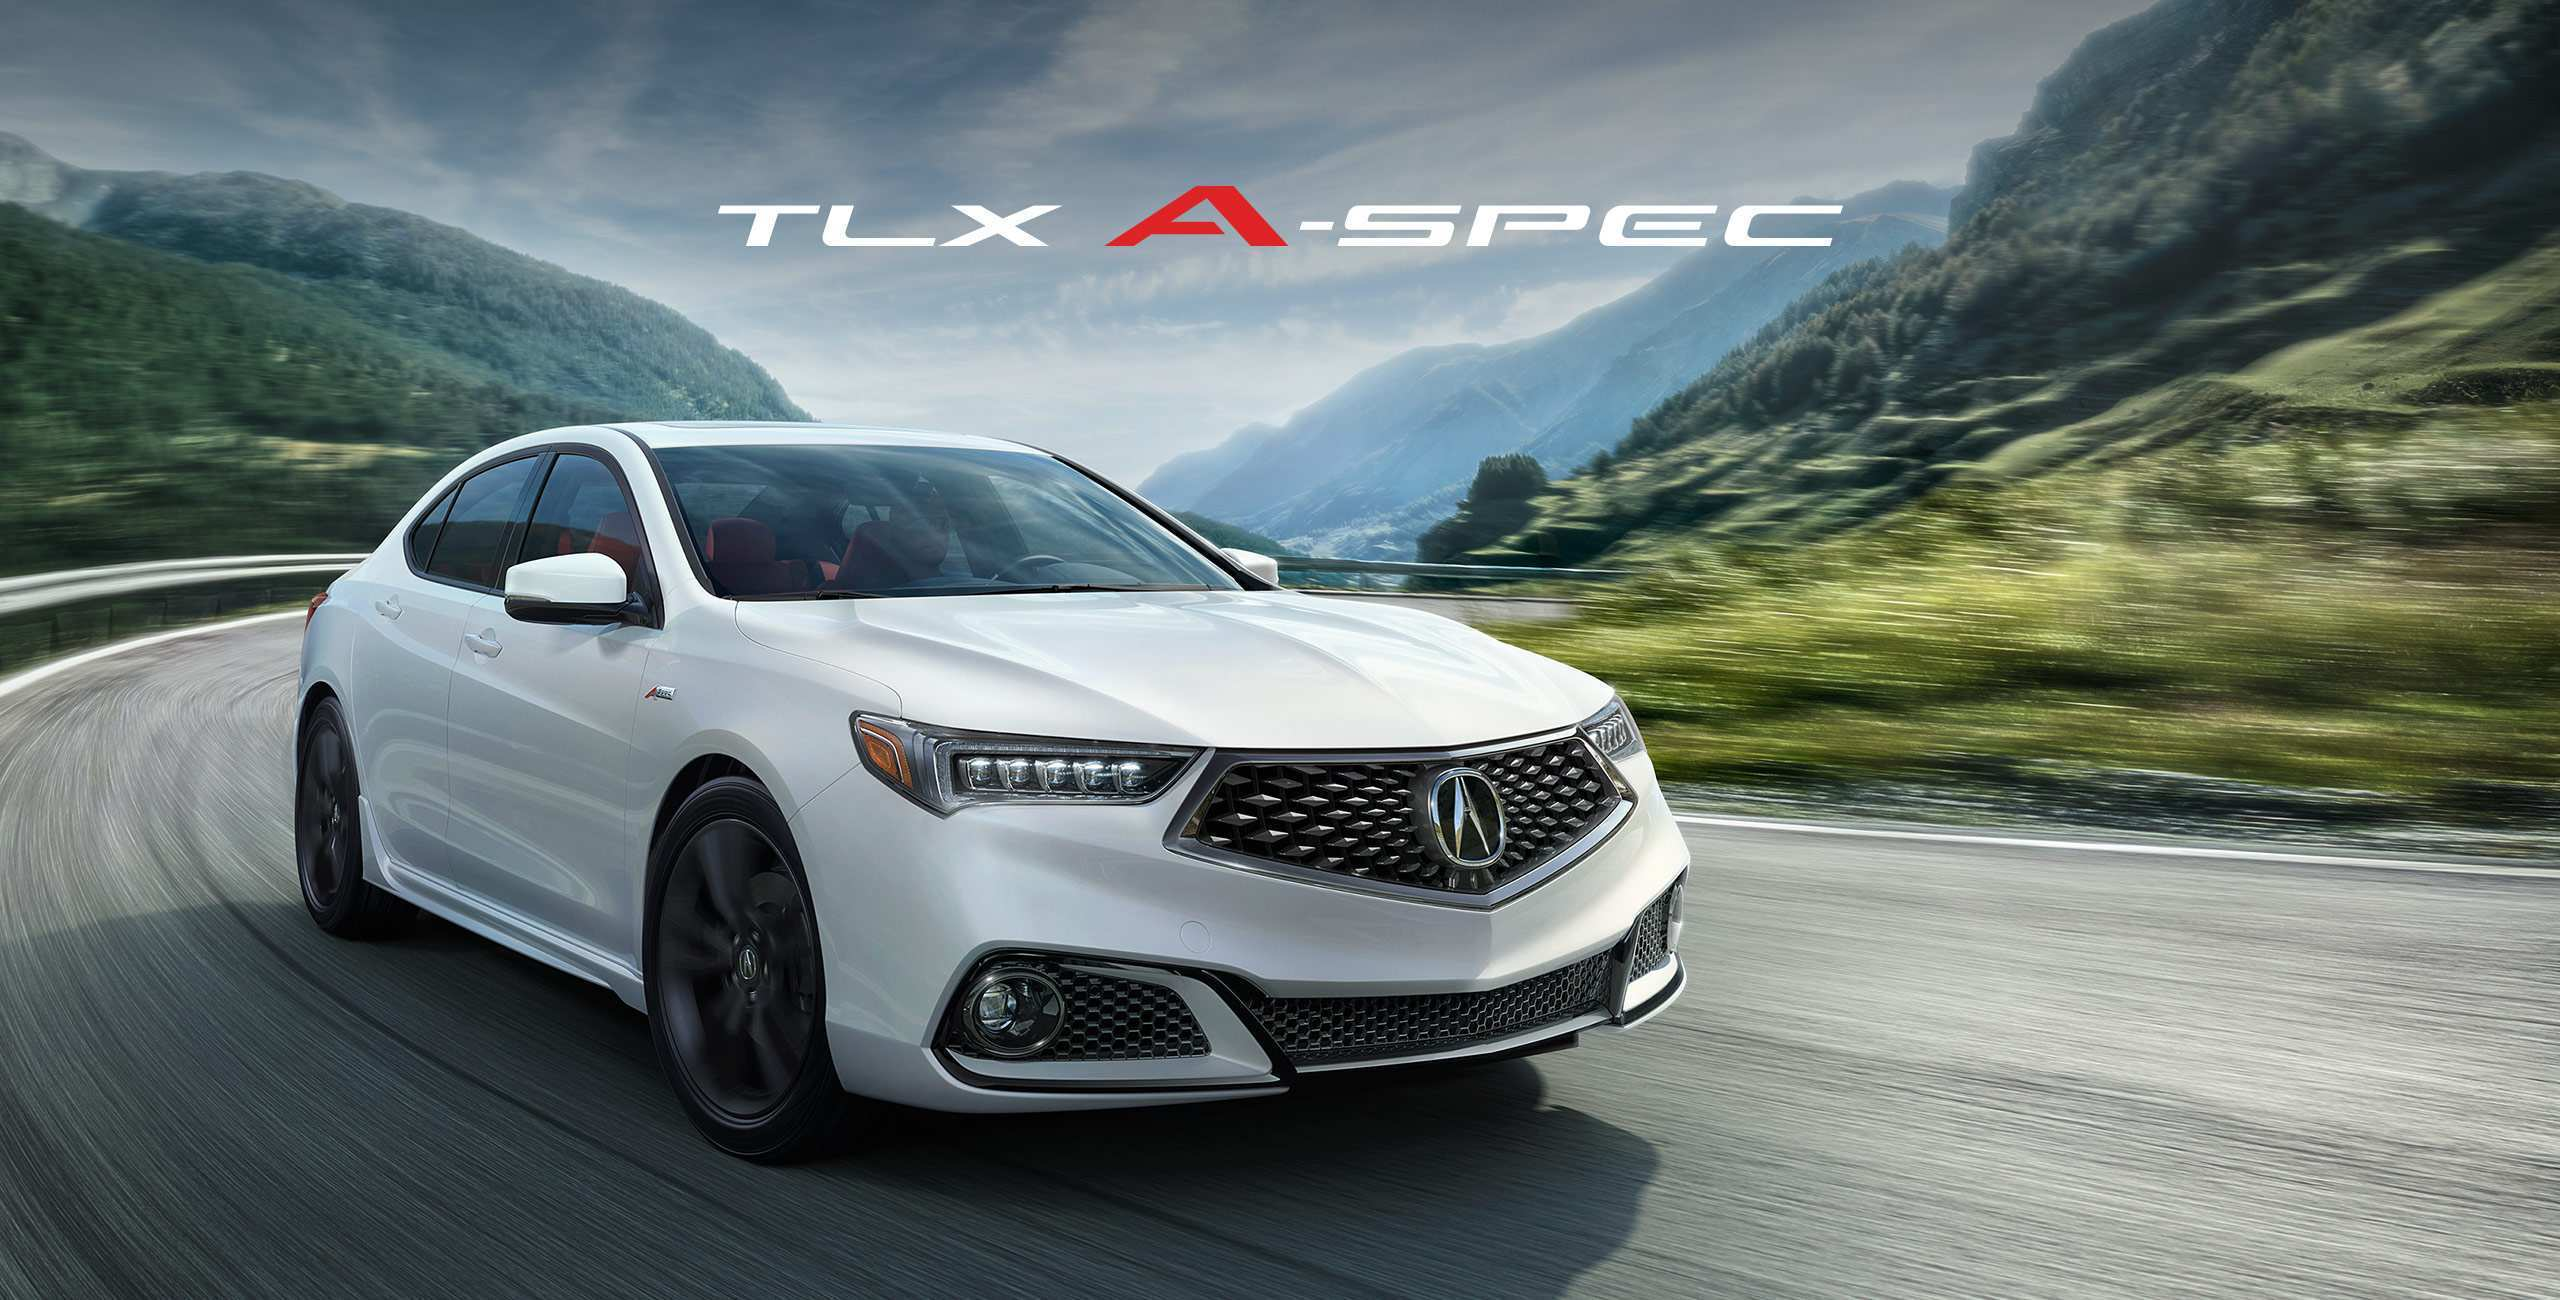 82 Gallery of Best Acura 2019 Tlx Brochure Redesign Pictures by Best Acura 2019 Tlx Brochure Redesign